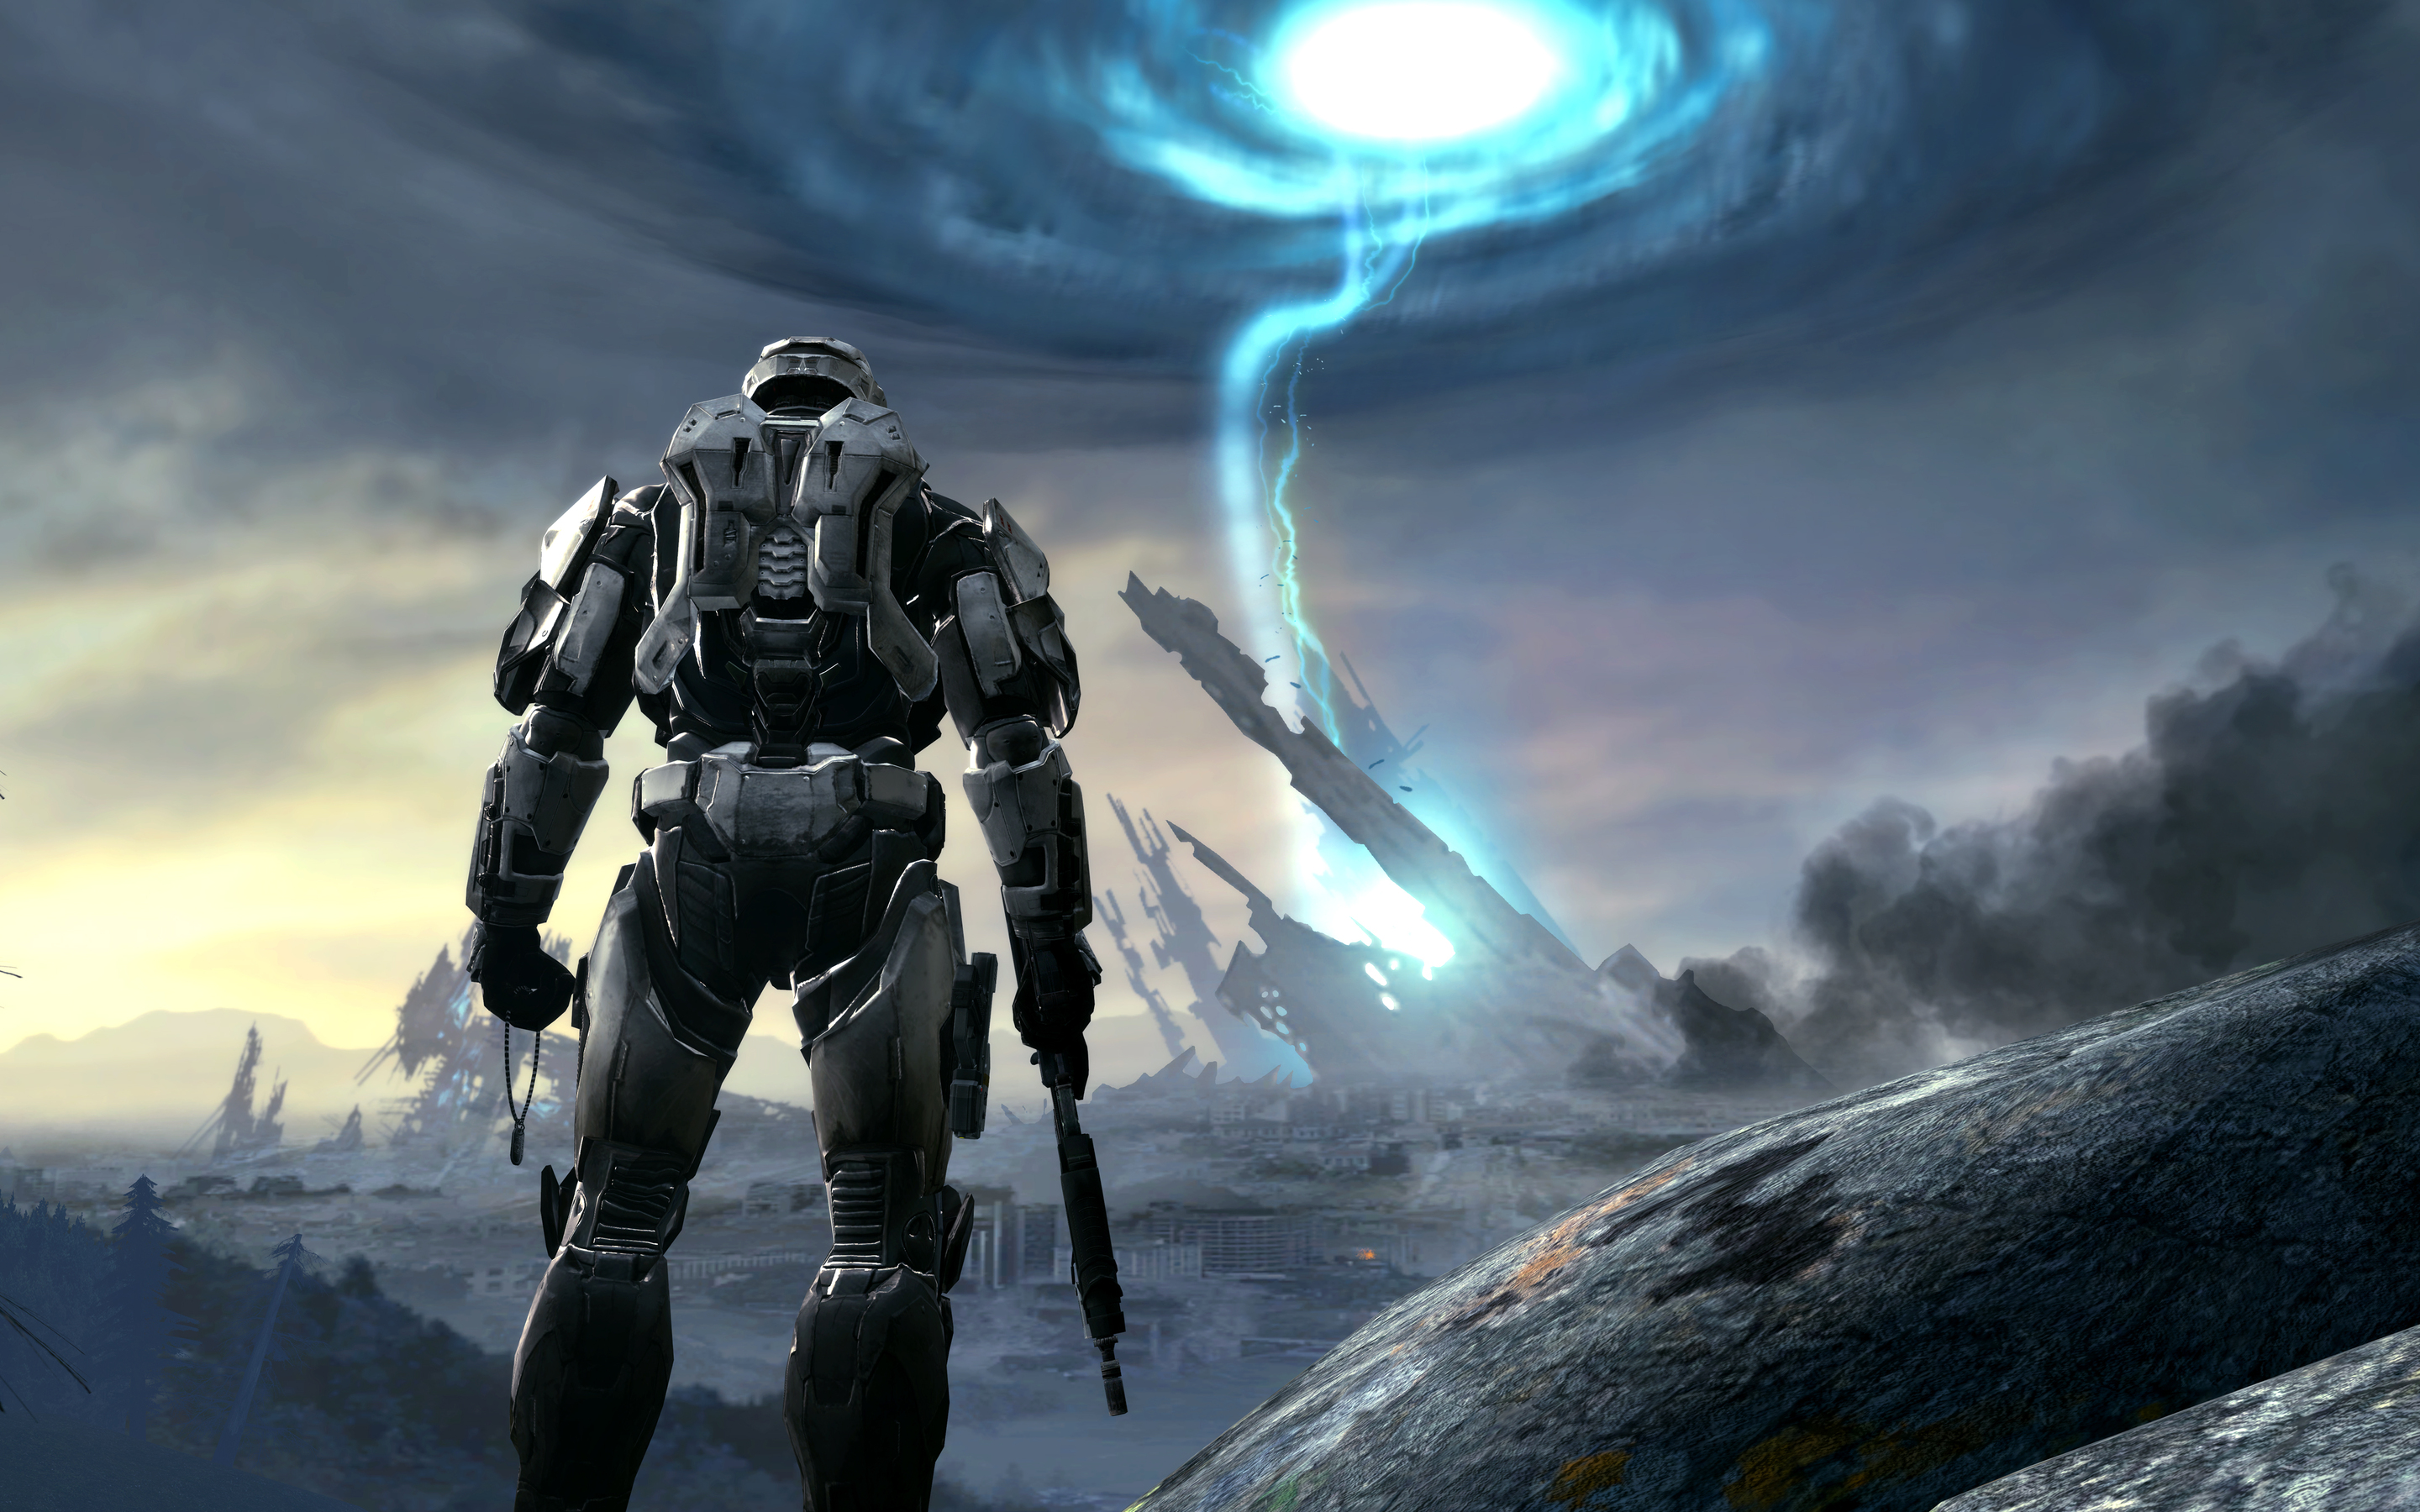 2880x1800 halo game artwork in 4k macbook pro retina hd 4k